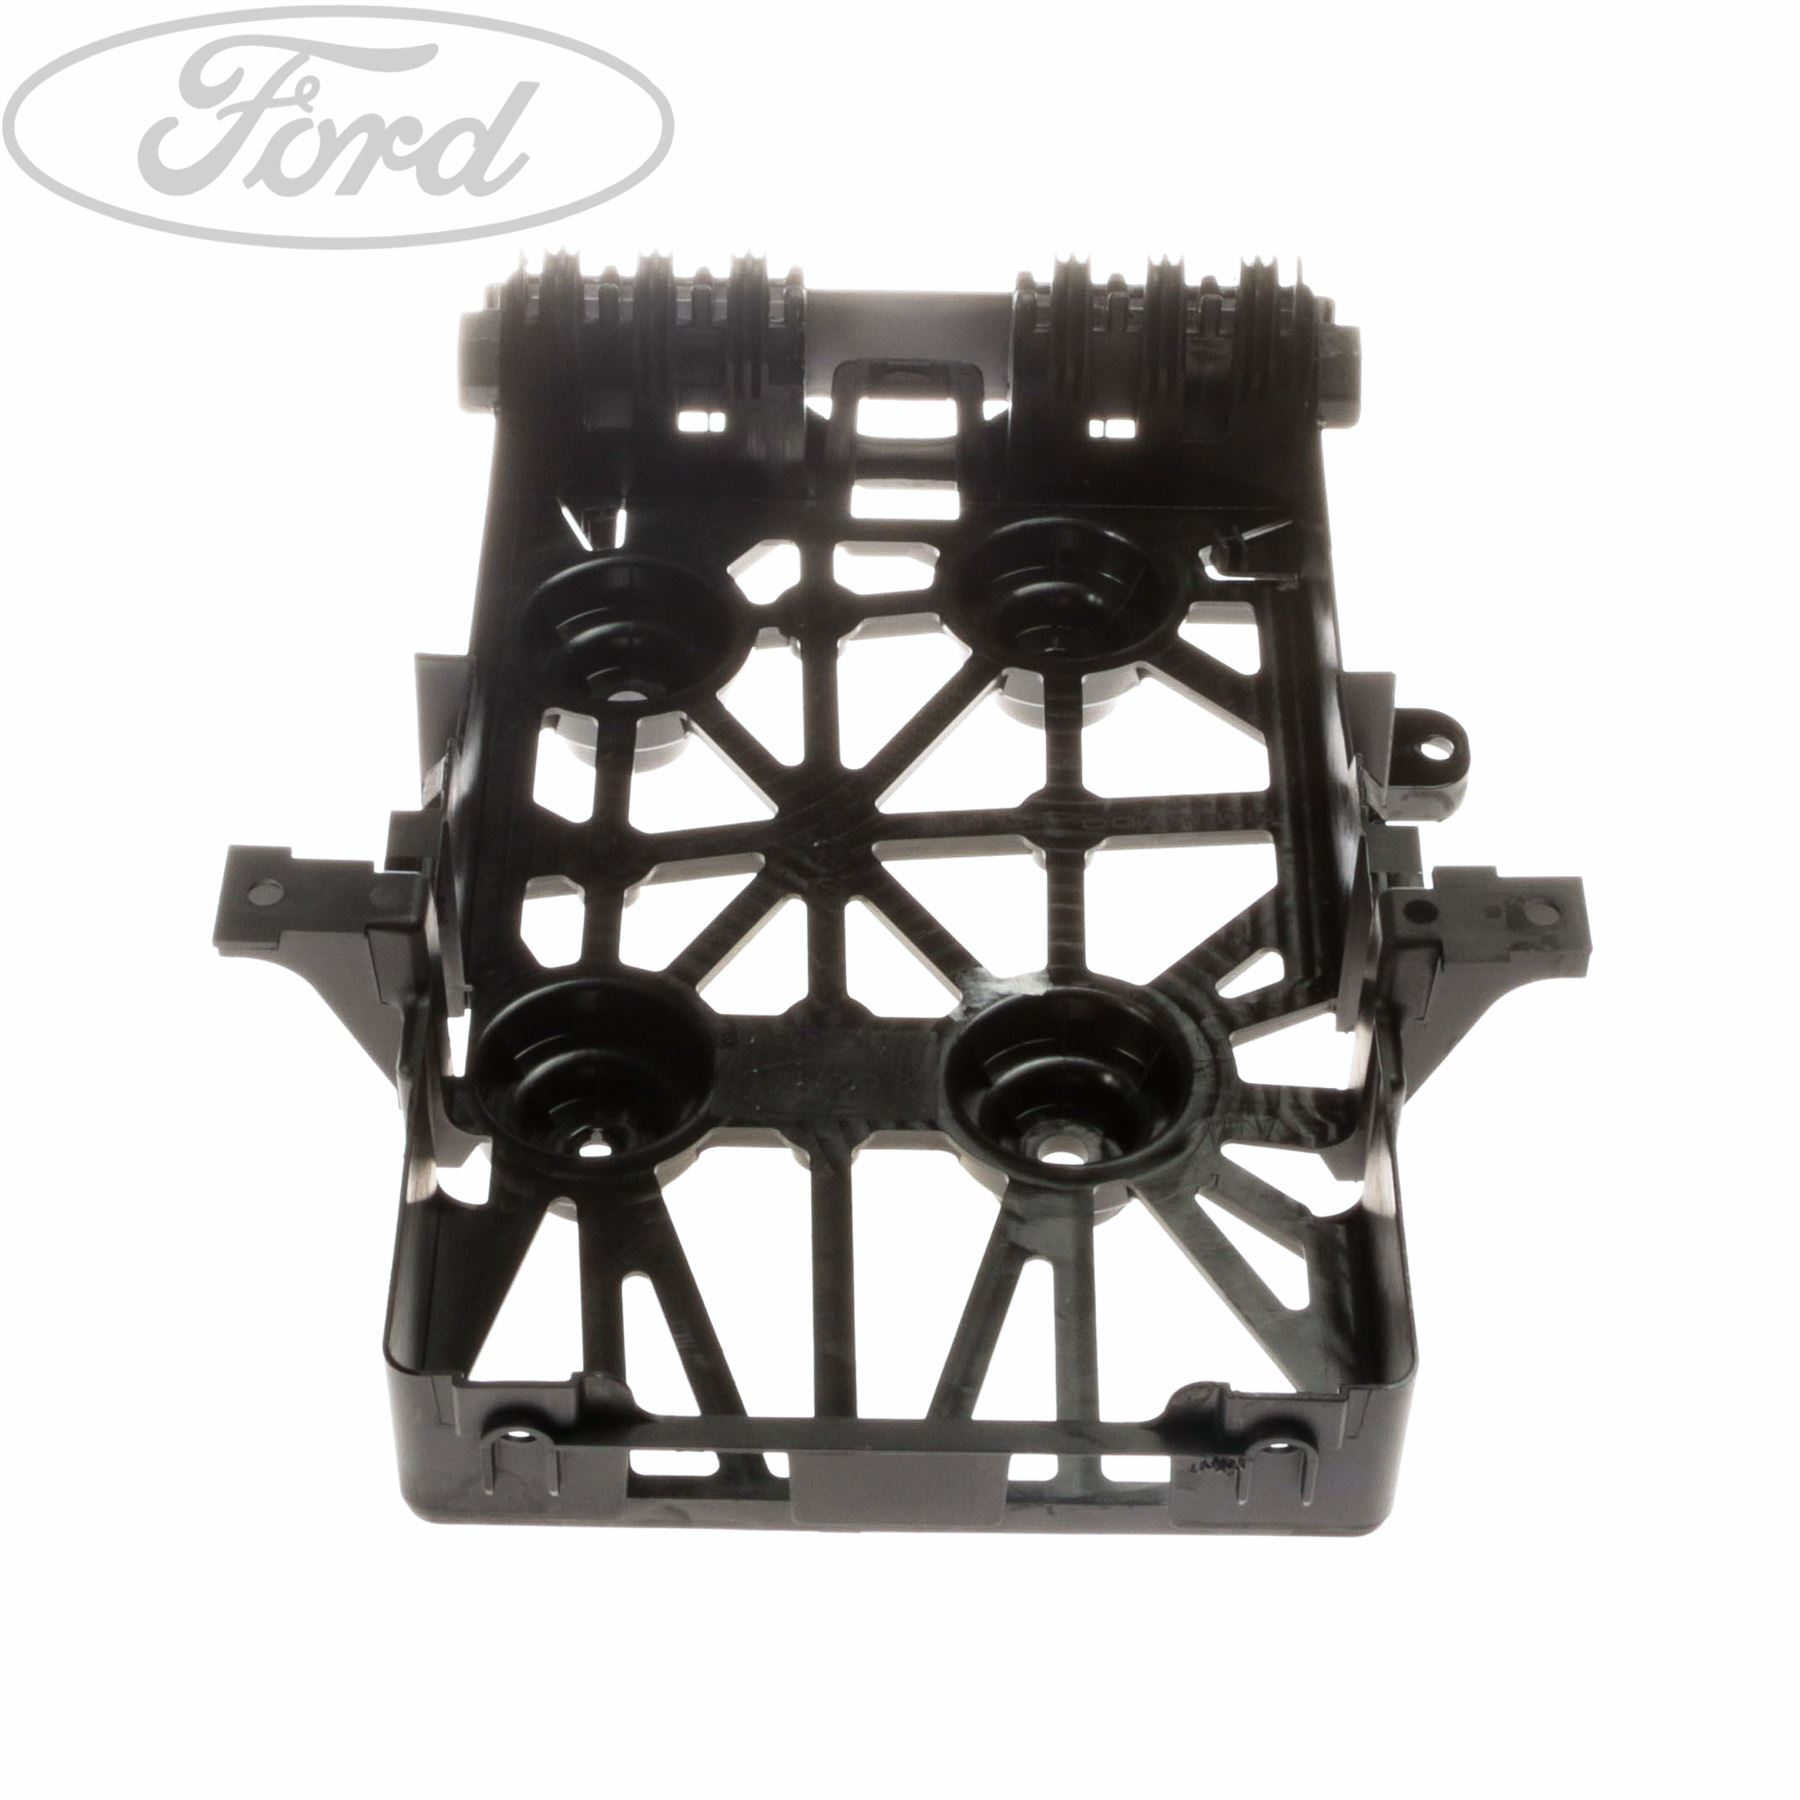 hight resolution of details about genuine ford transit mk 7 fuse box bracket 1434704